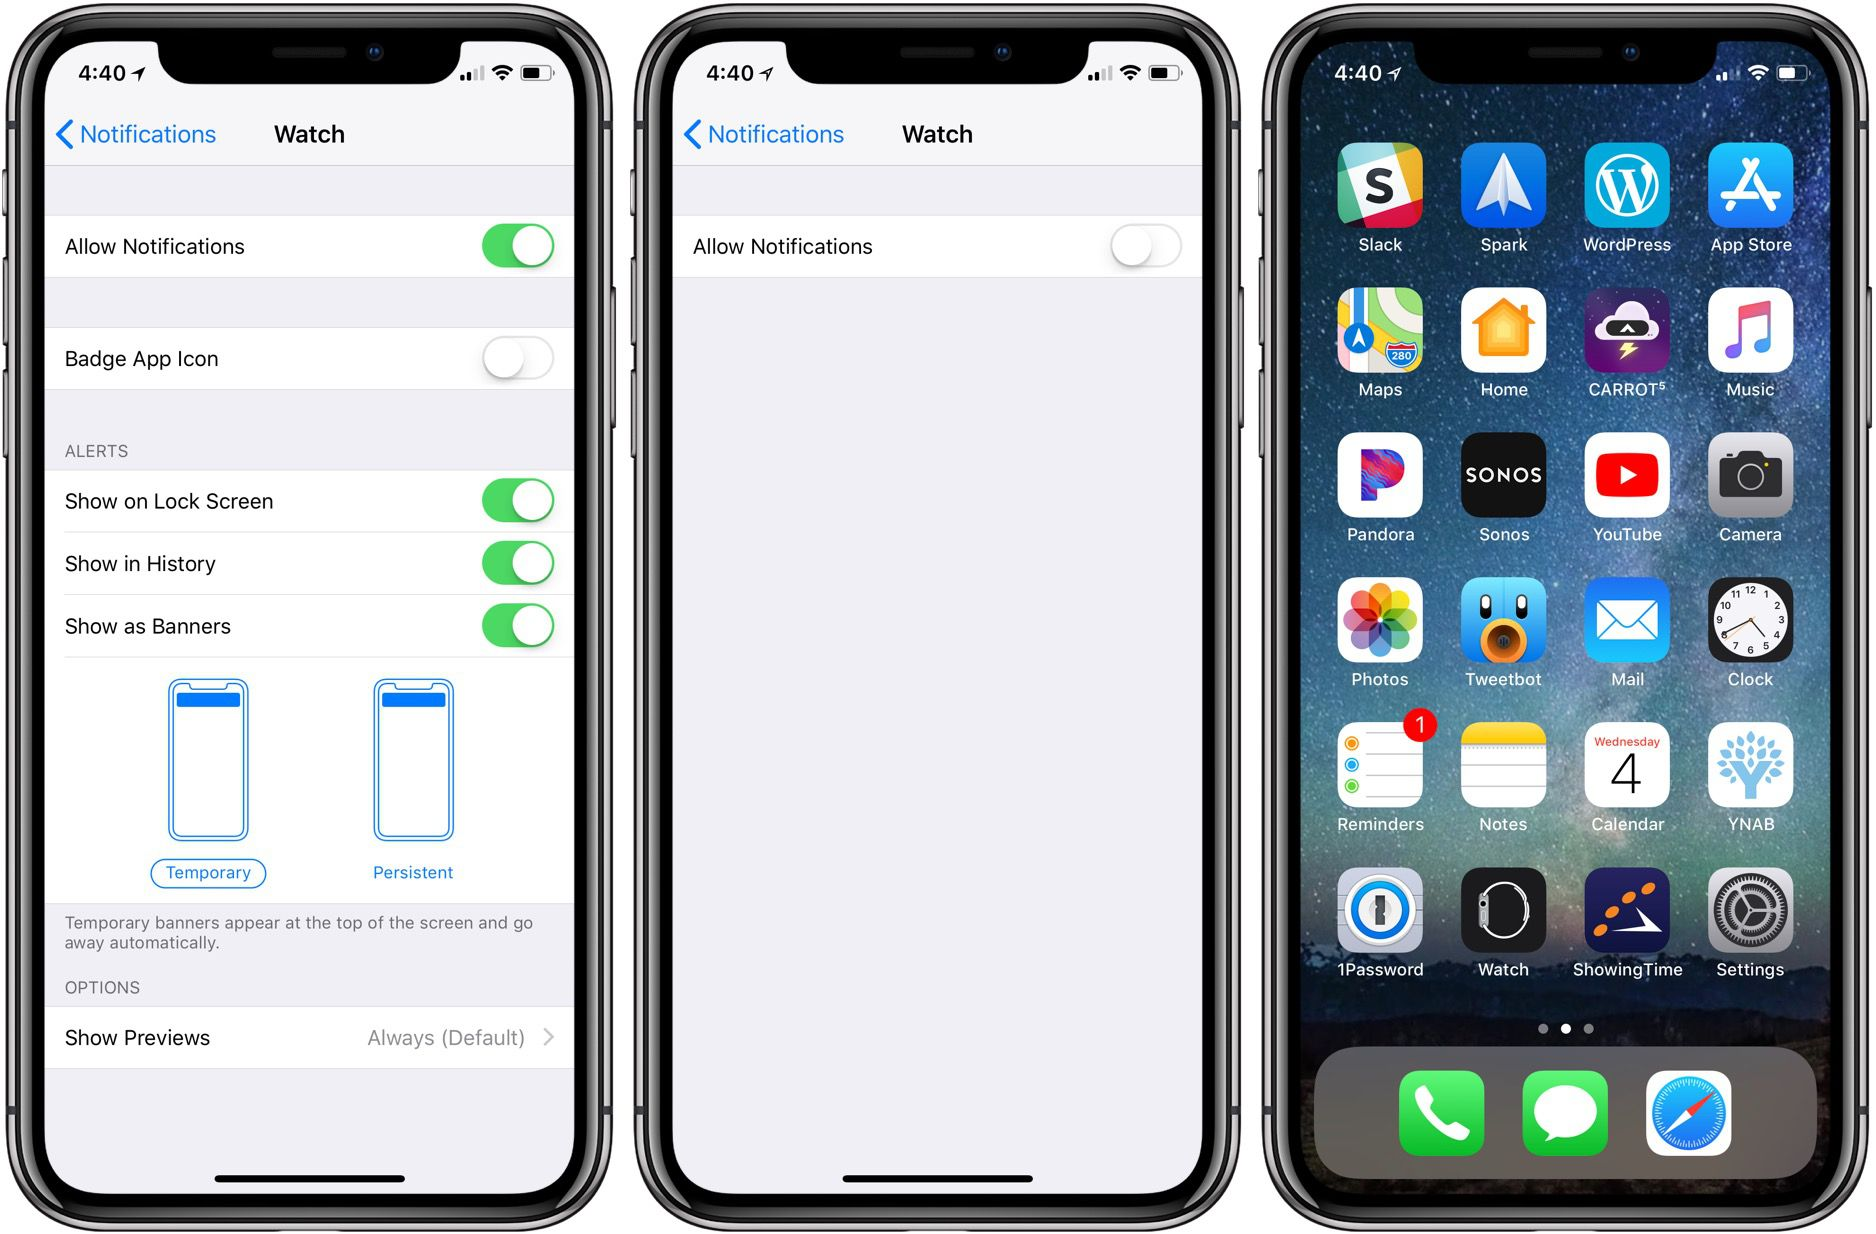 How To Turn On Notifications On Iphone 6 How to Turn on